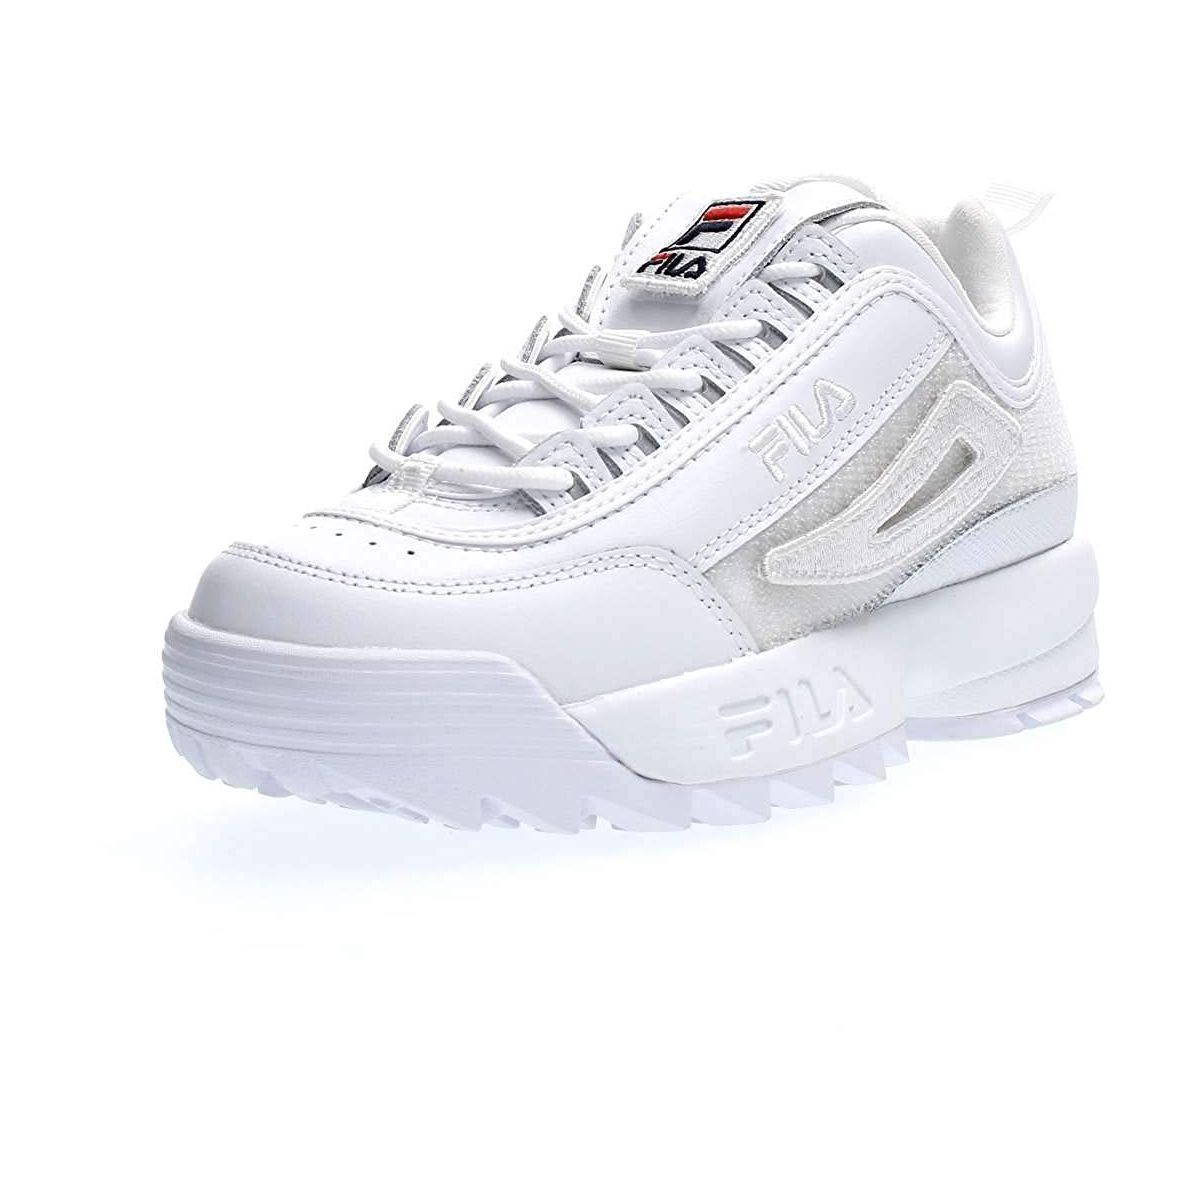 Fila femme disruptor 2 patches blanc1179601_2